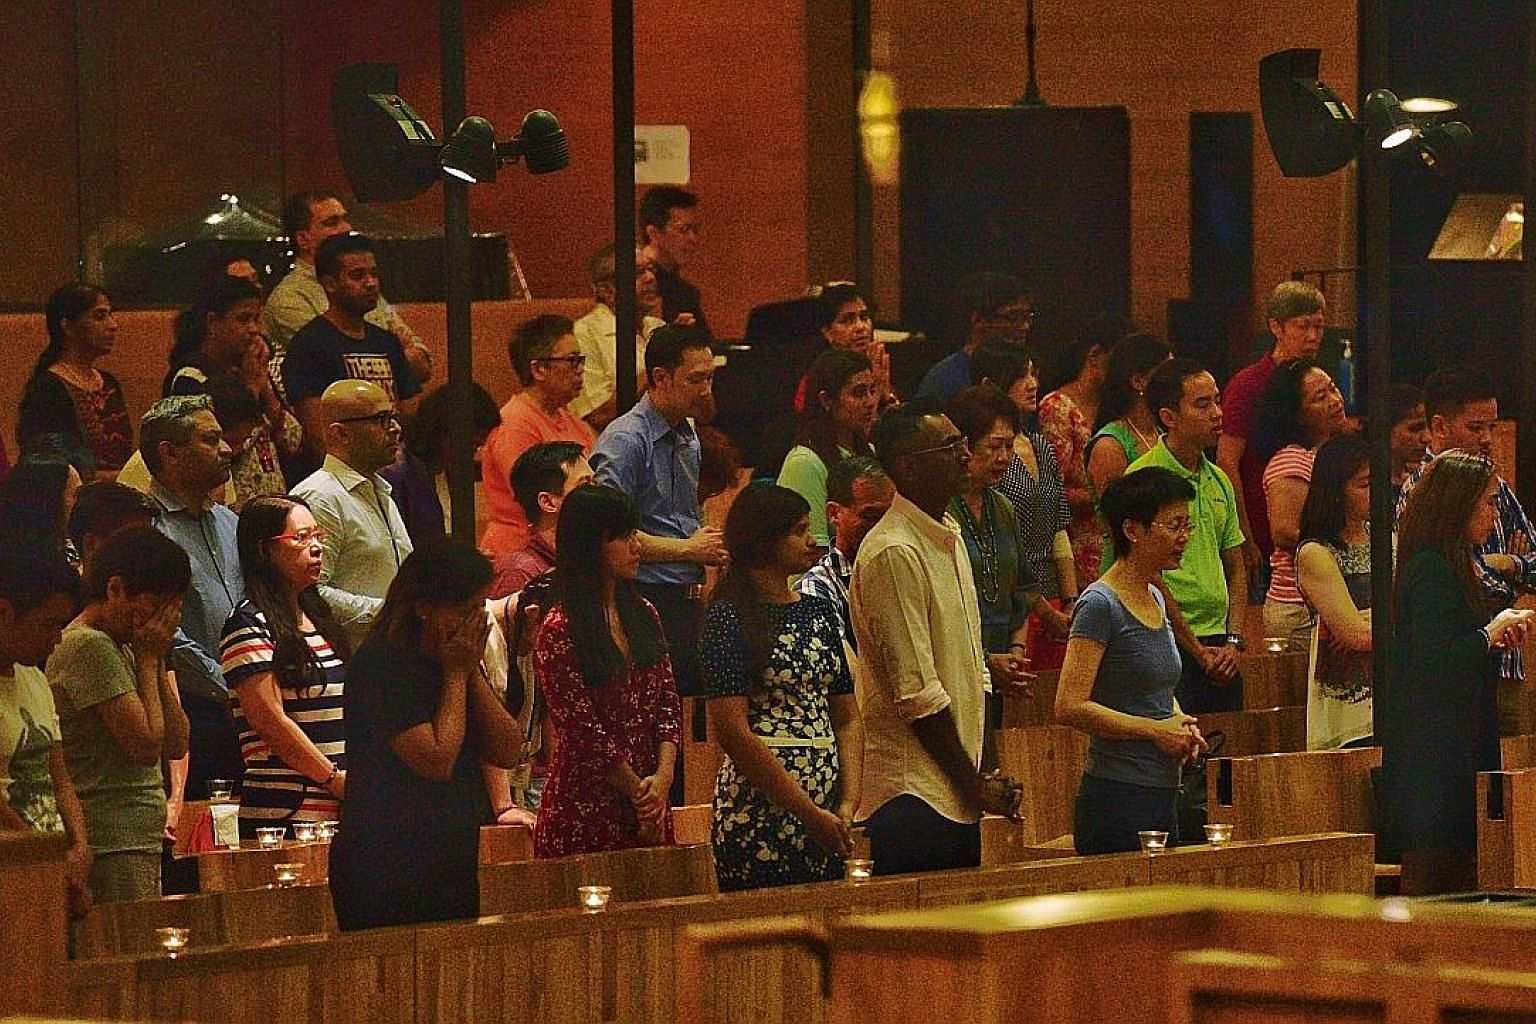 A mass was held last night at the Church of St Mary of the Angels to pray for the safe return of Singaporean diver Rinta Paul Mukkam, who has been missing for two weeks. She had been on a diving trip off Komodo Island in Indonesia.